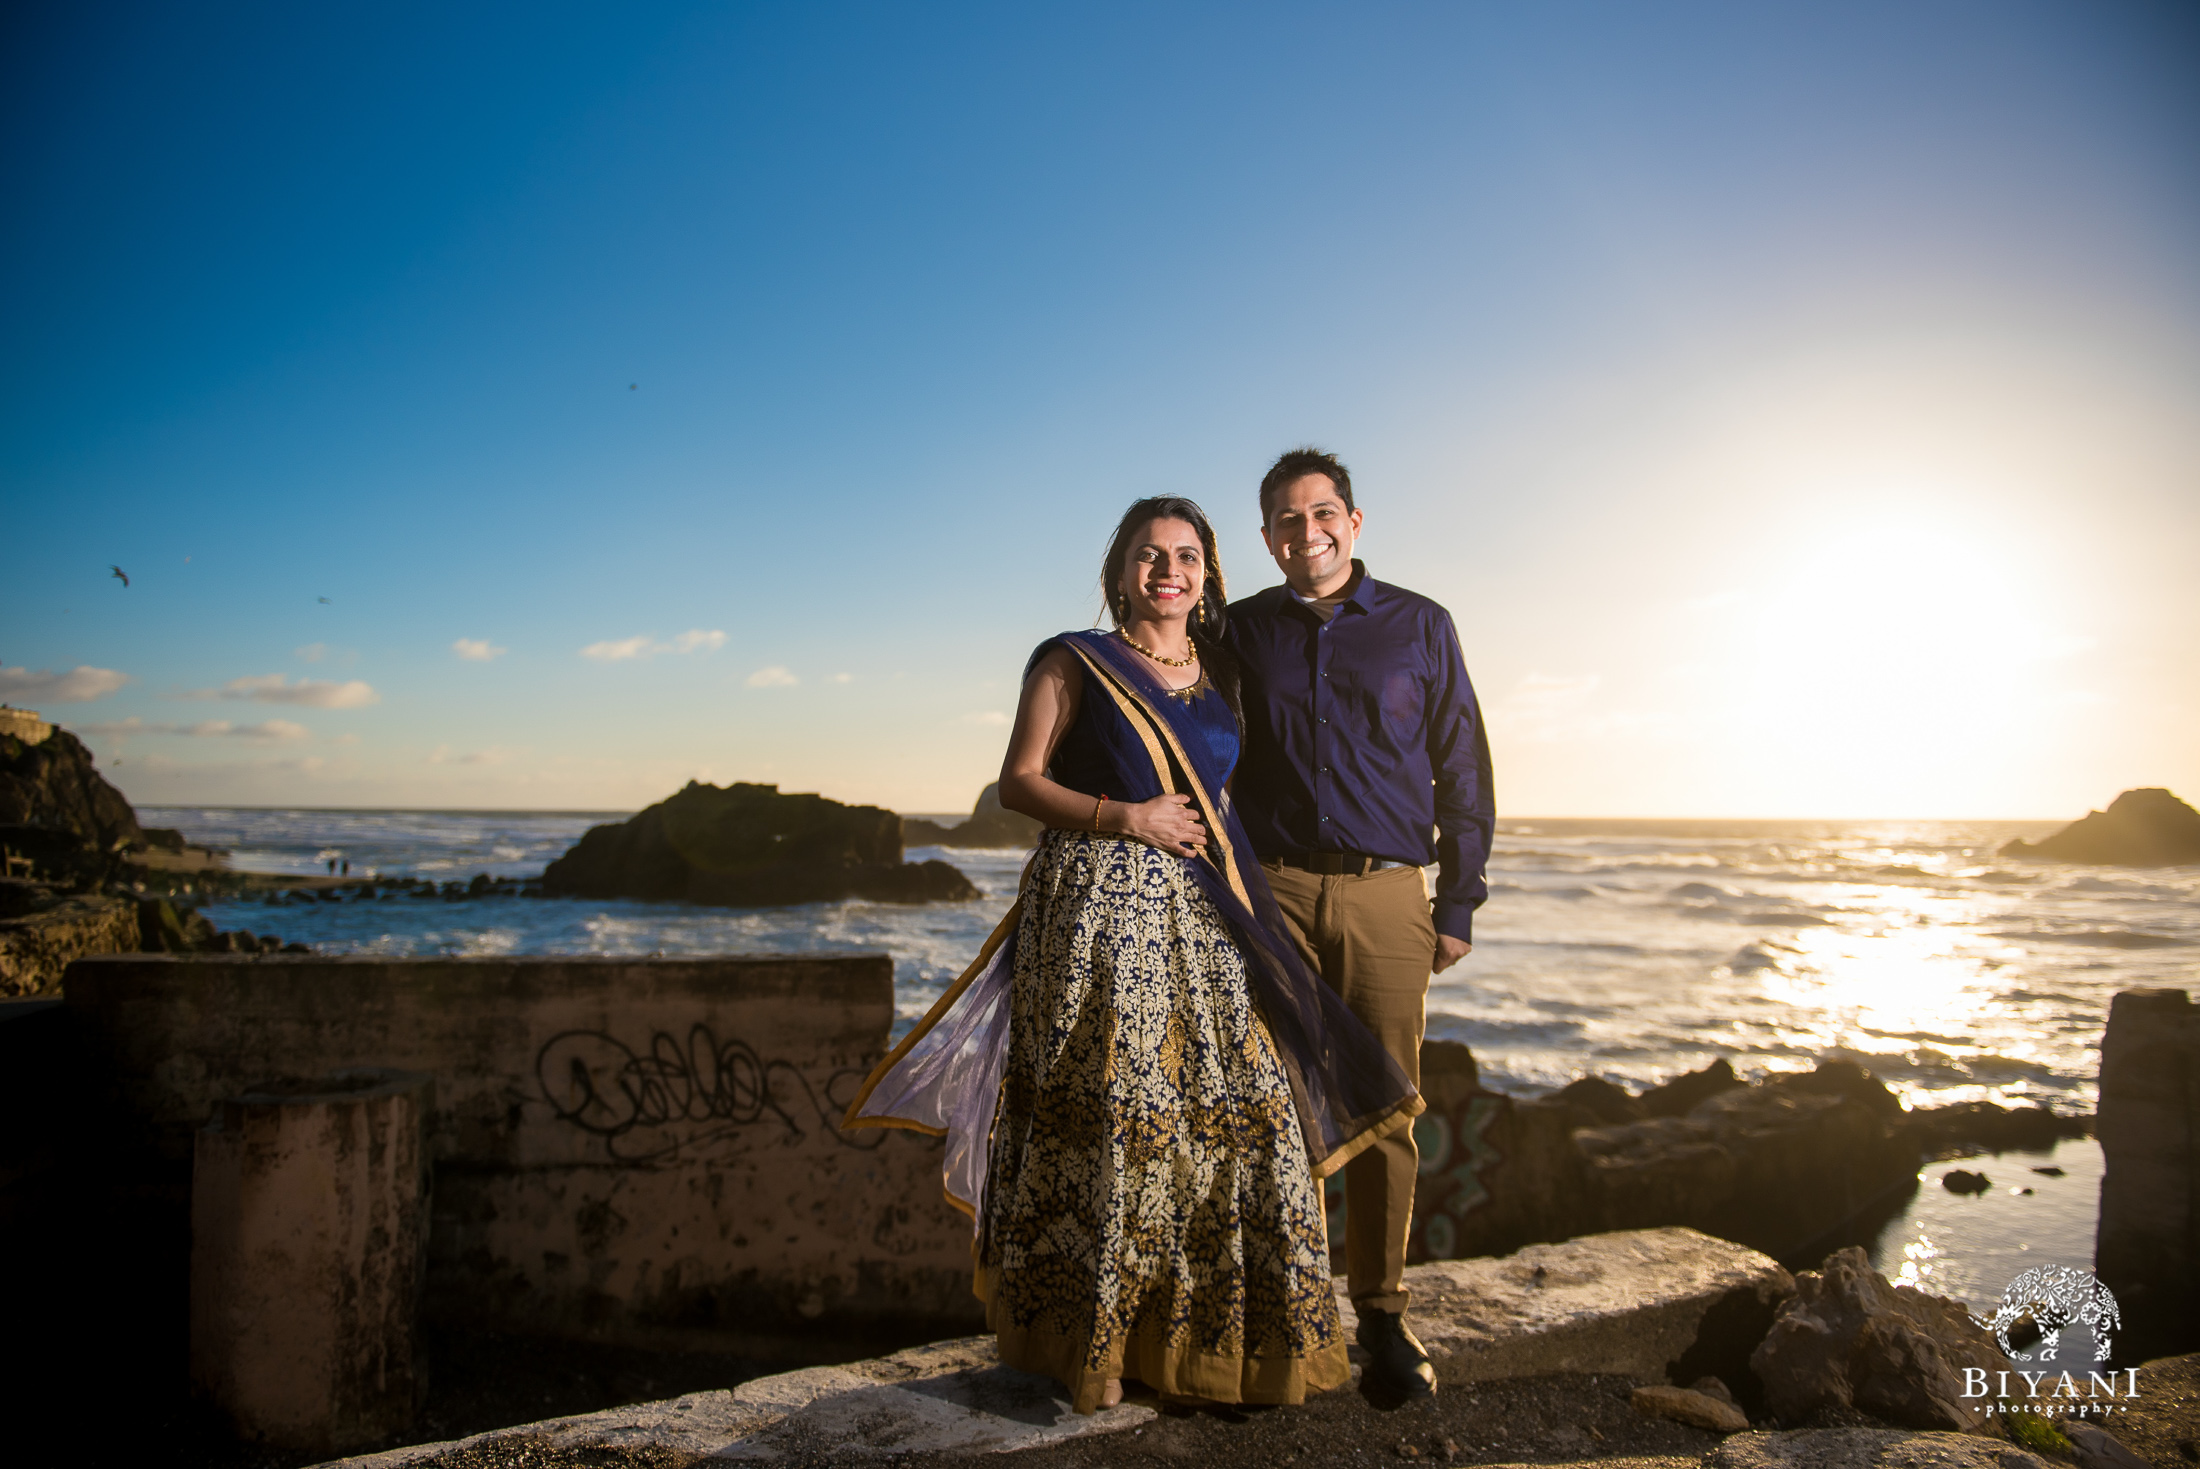 San Francisco Indian Engagement photo shoot with couple posing in front of the ocean front during sunset dressed in traditional Indian dress